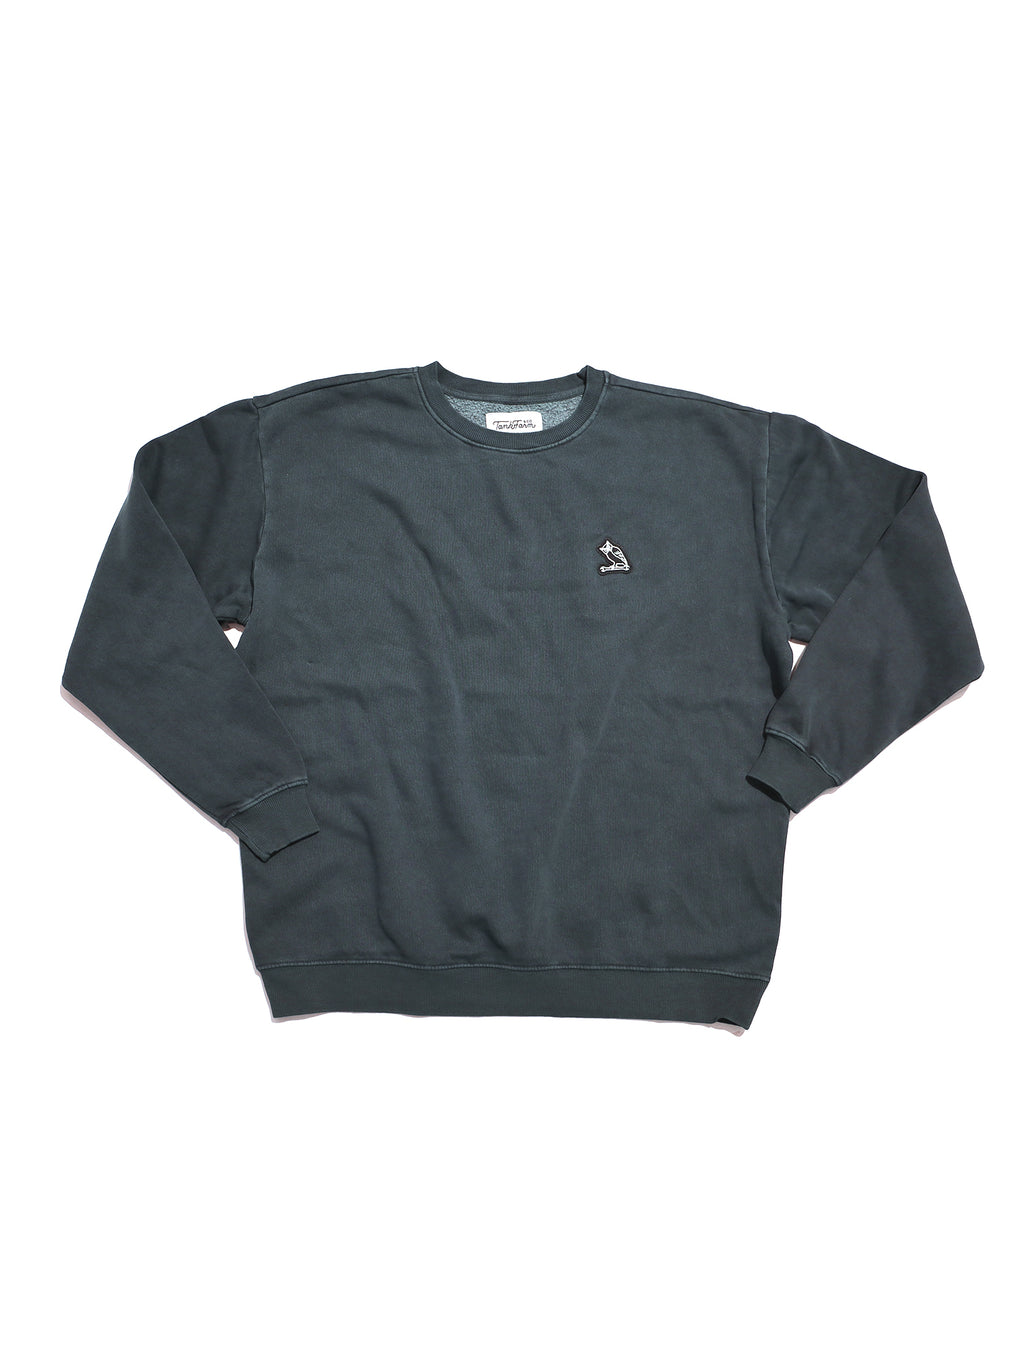 TF NIGHTCREW OWL CREW NECK - VINTAGE NAVY - Tankfarm & Co.